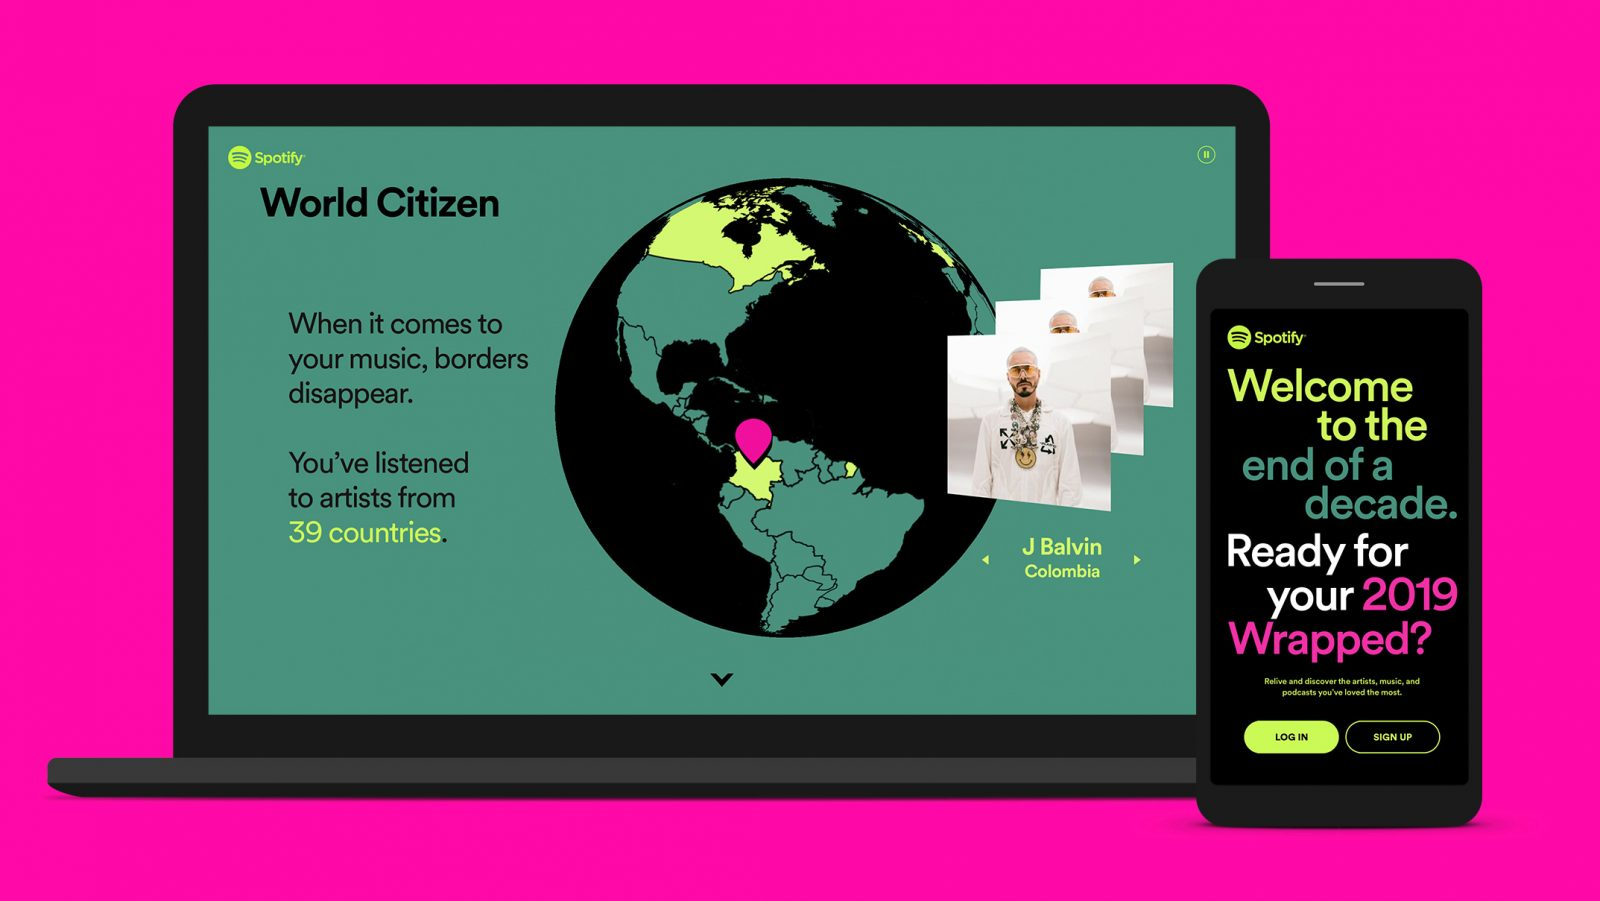 Spotify blog post infographic and illustration example